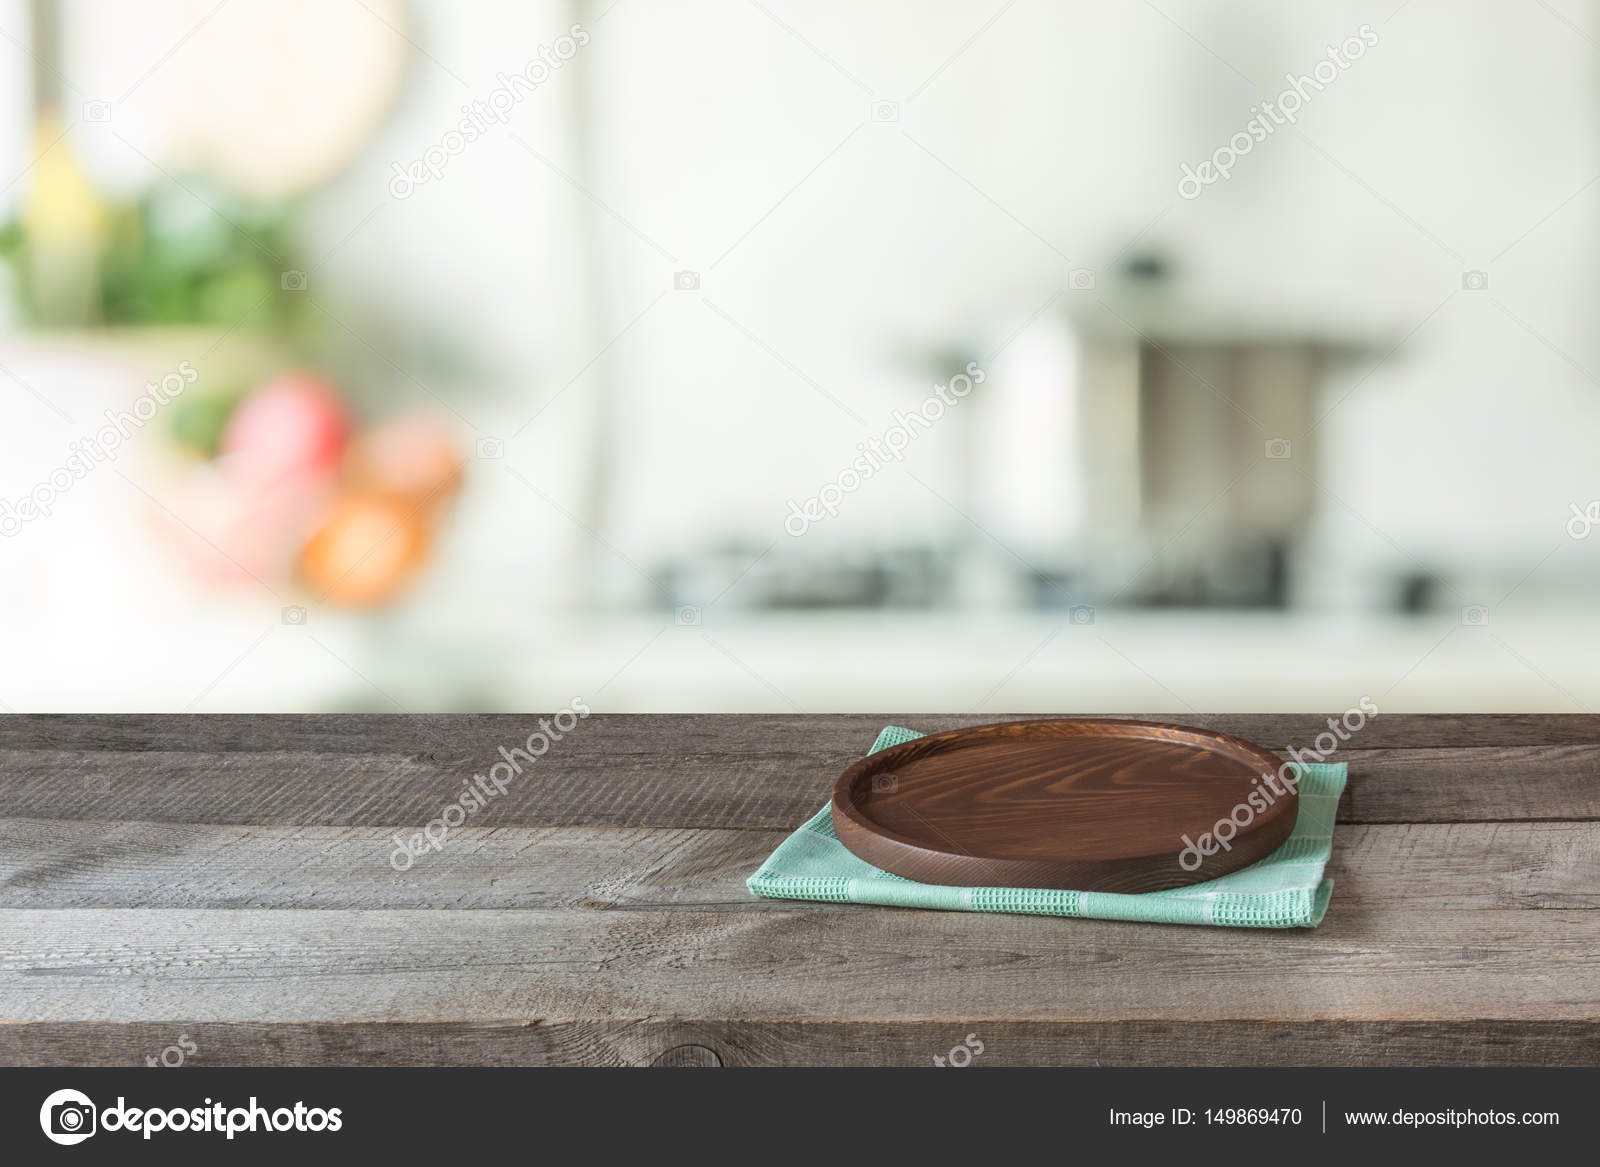 Kitchen Table Top Background blurred and abstract background. empty wooden tabletop with tray